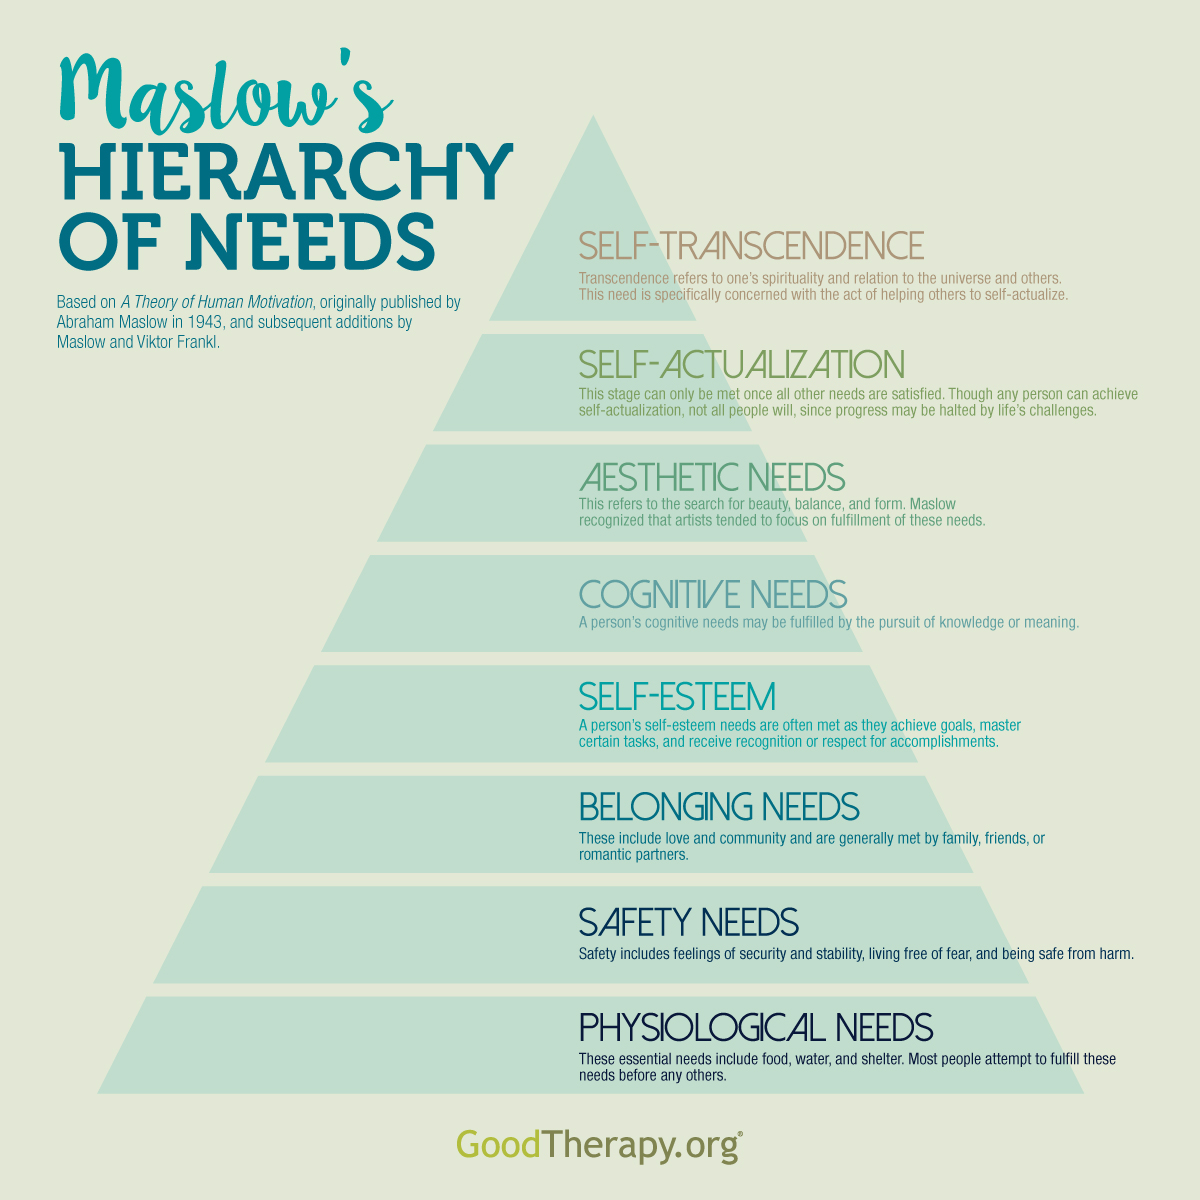 abraham-maslow-hierarchy-of-needs